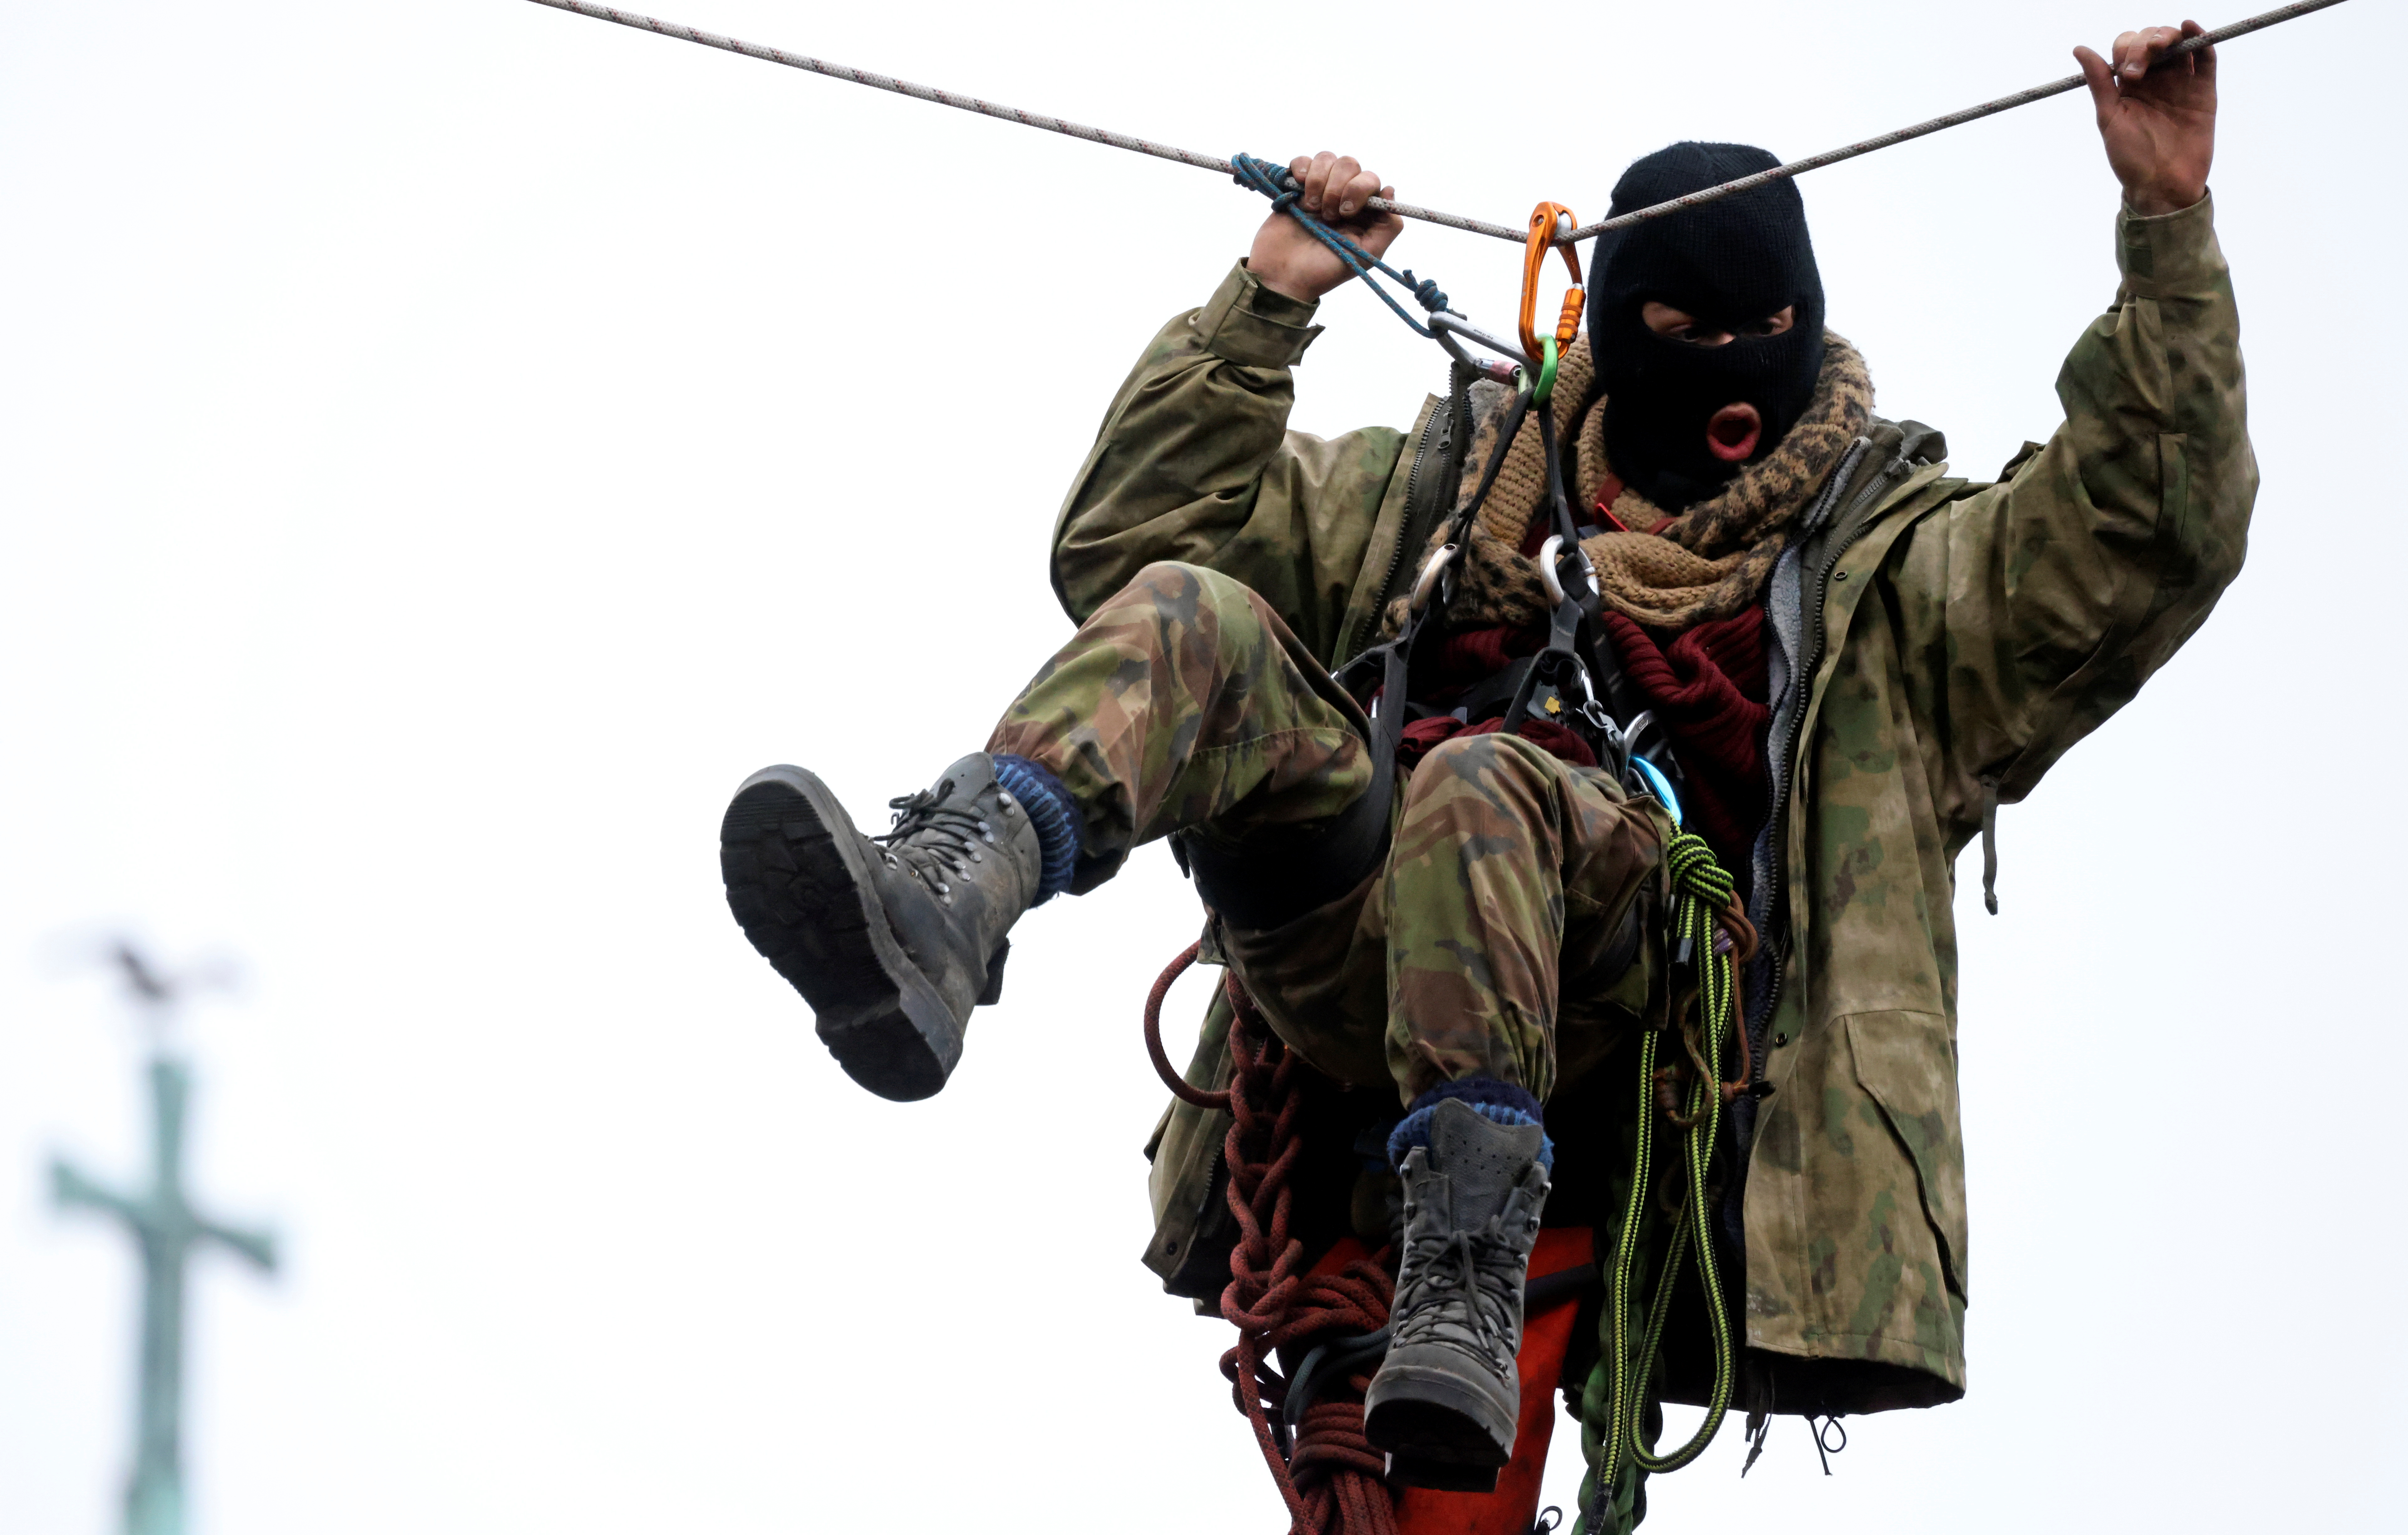 An Extinction Rebellion activist hangs from a rope at a makeshift camp, as others occupy tunnels under Euston Square Gardens, to protest against the HS2 high-speed railway in London, Britain, January 27, 2021. REUTERS/Hannah McKay